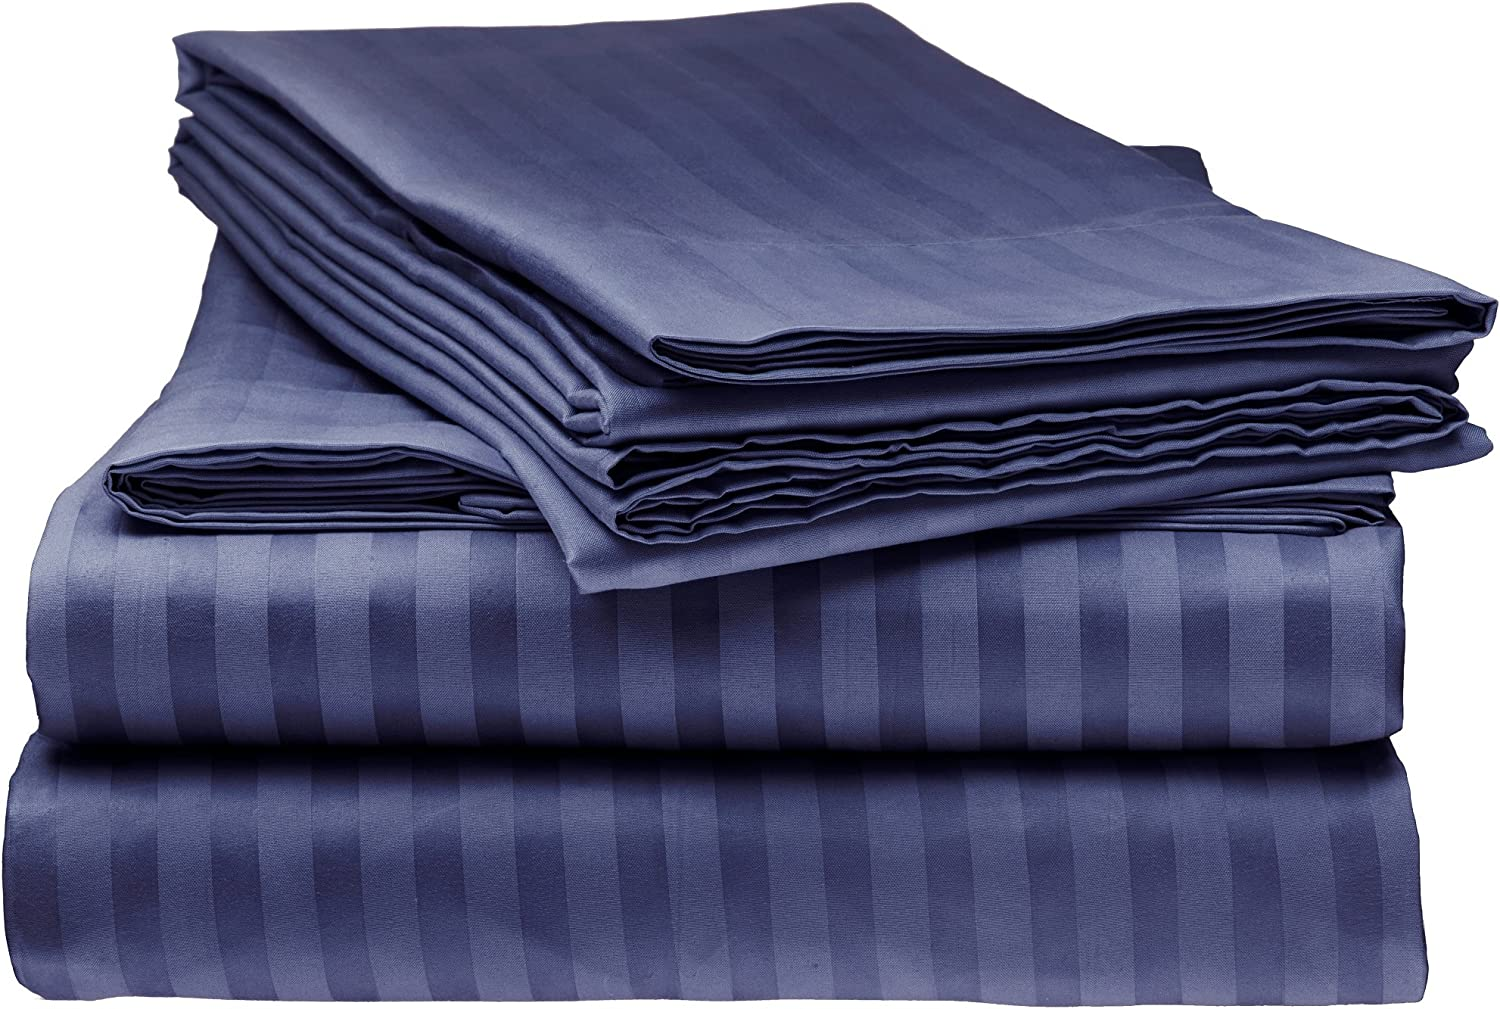 Italian Prestige Collection Bed Sheet Set – 1800 Luxury Soft Microfiber Hypoallergenic Deep Pocket 4-Piece Bedding Set - Wrinkle, Stain, Fade Resistant - Navy, King Size